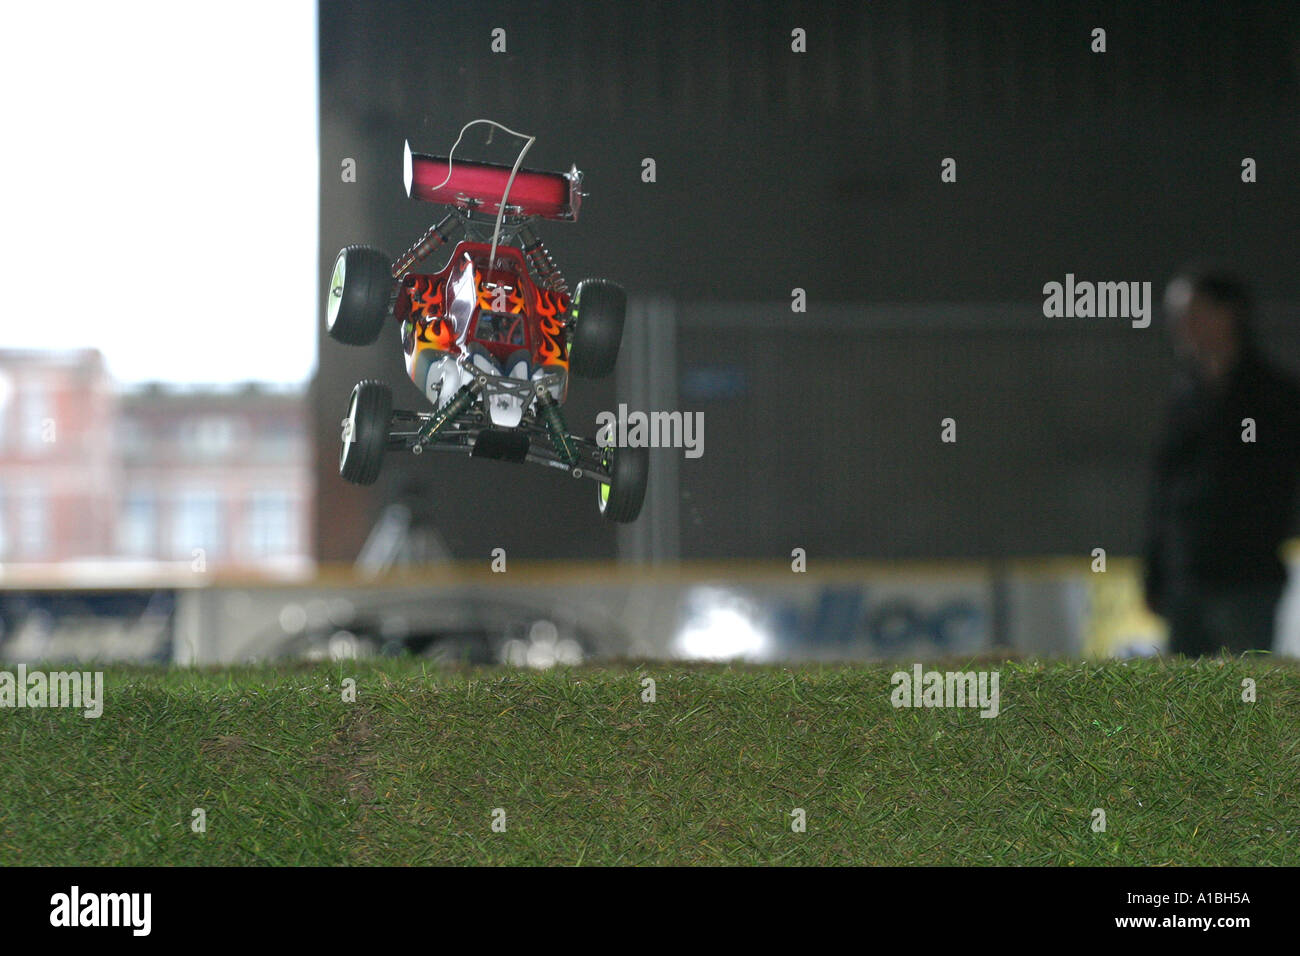 Off road buggy radio control car racing buggy in the air over a jump indoor grass track Belfast Northern Ireland - Stock Image